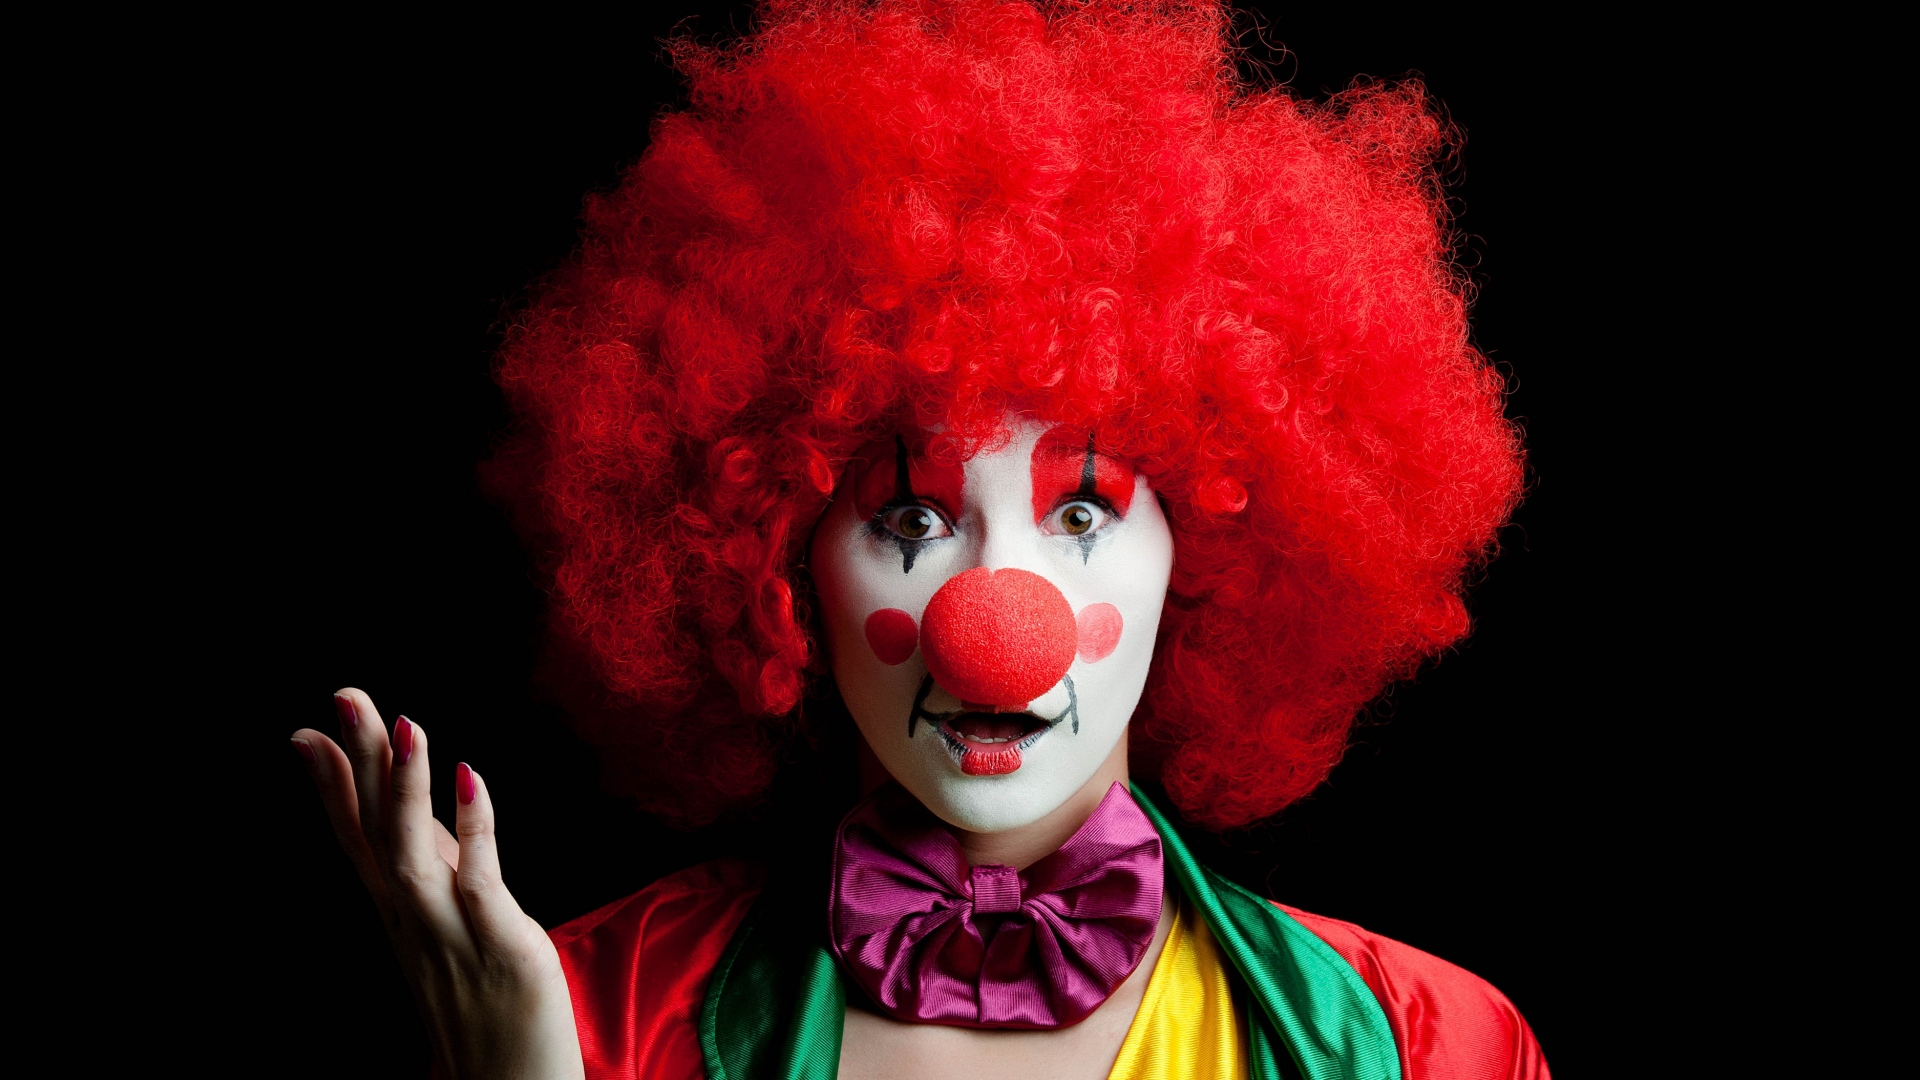 Full HD 1080p Clown Wallpapers HD, Desktop Backgrounds 1920x1080